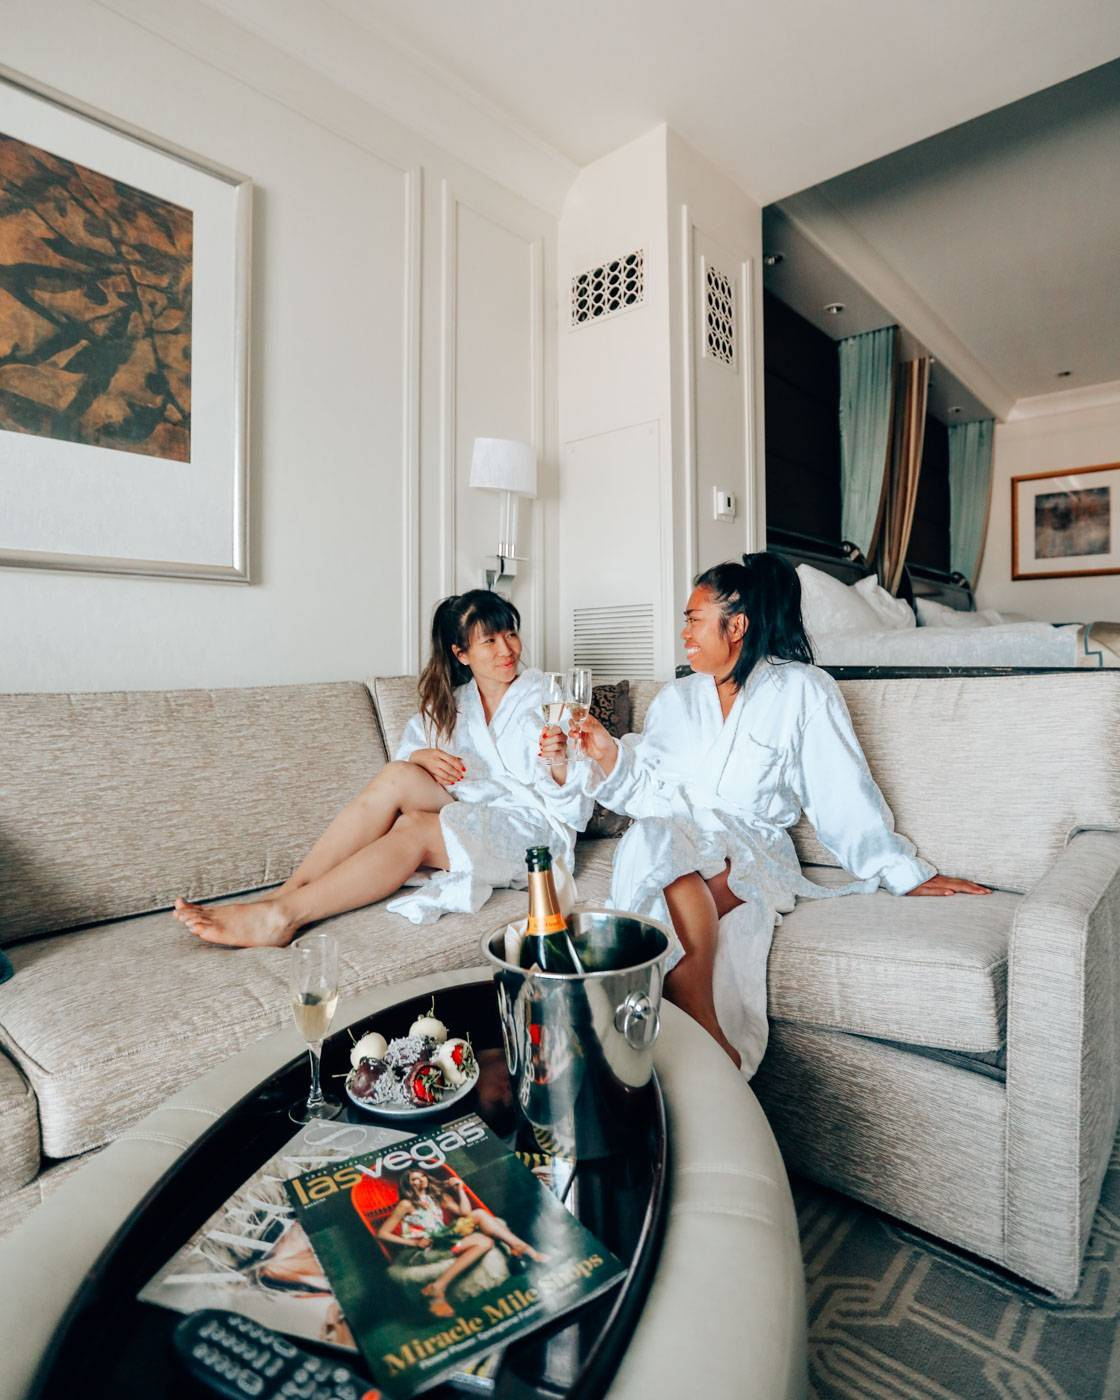 Planning a girls' trip to Vegas? Hop on the Suiteness train and have them fix the group up with the most gorgeous adjoining rooms and more